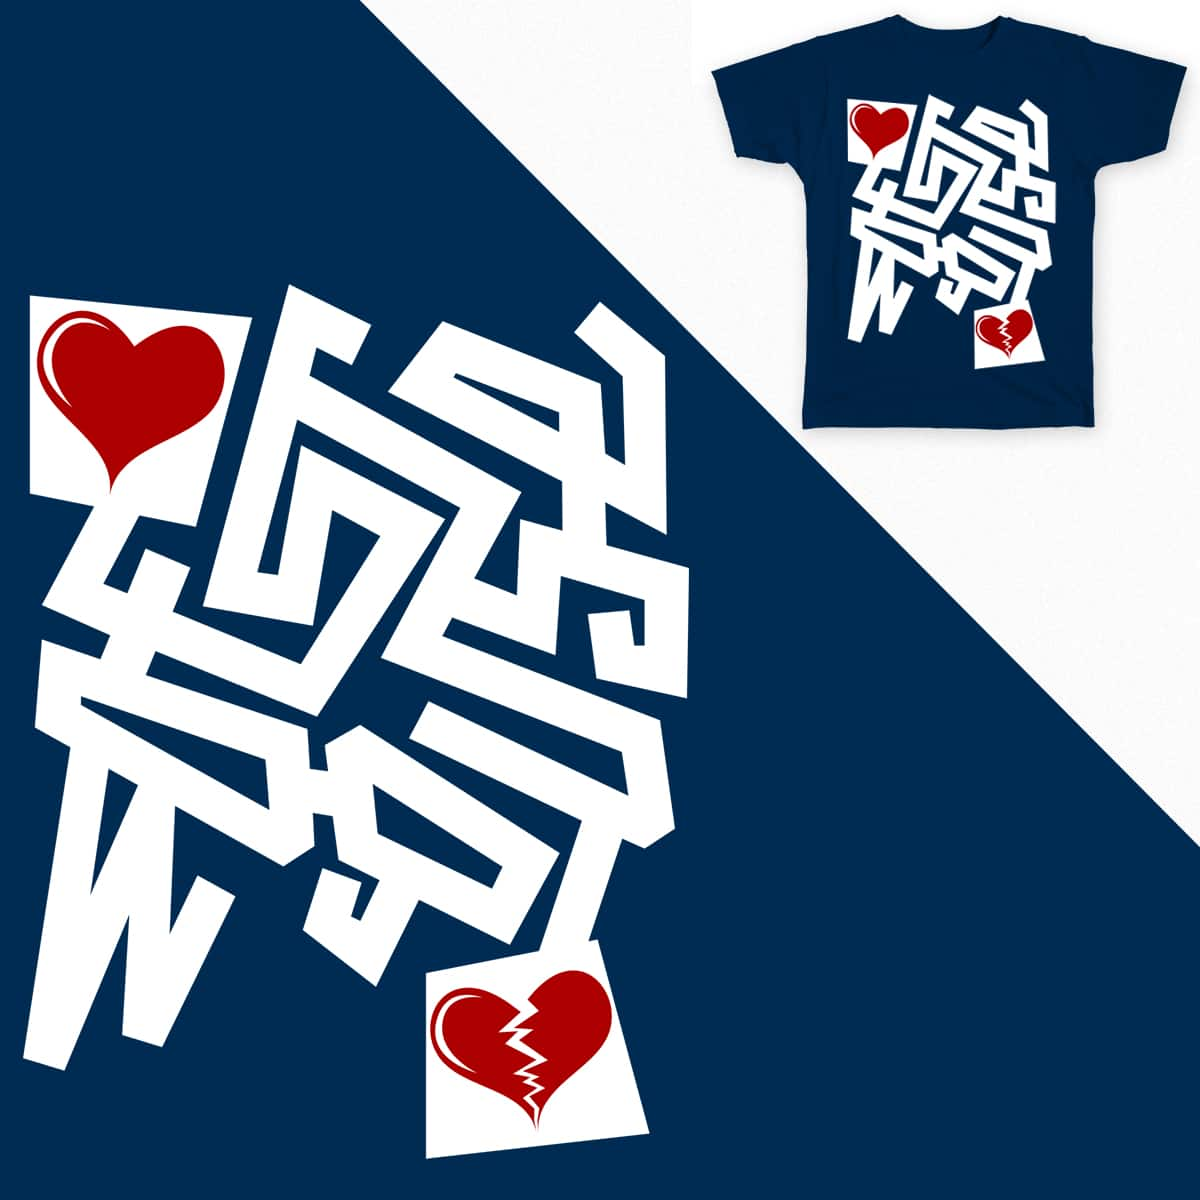 Love Is A Puzzle by nickelse on Threadless